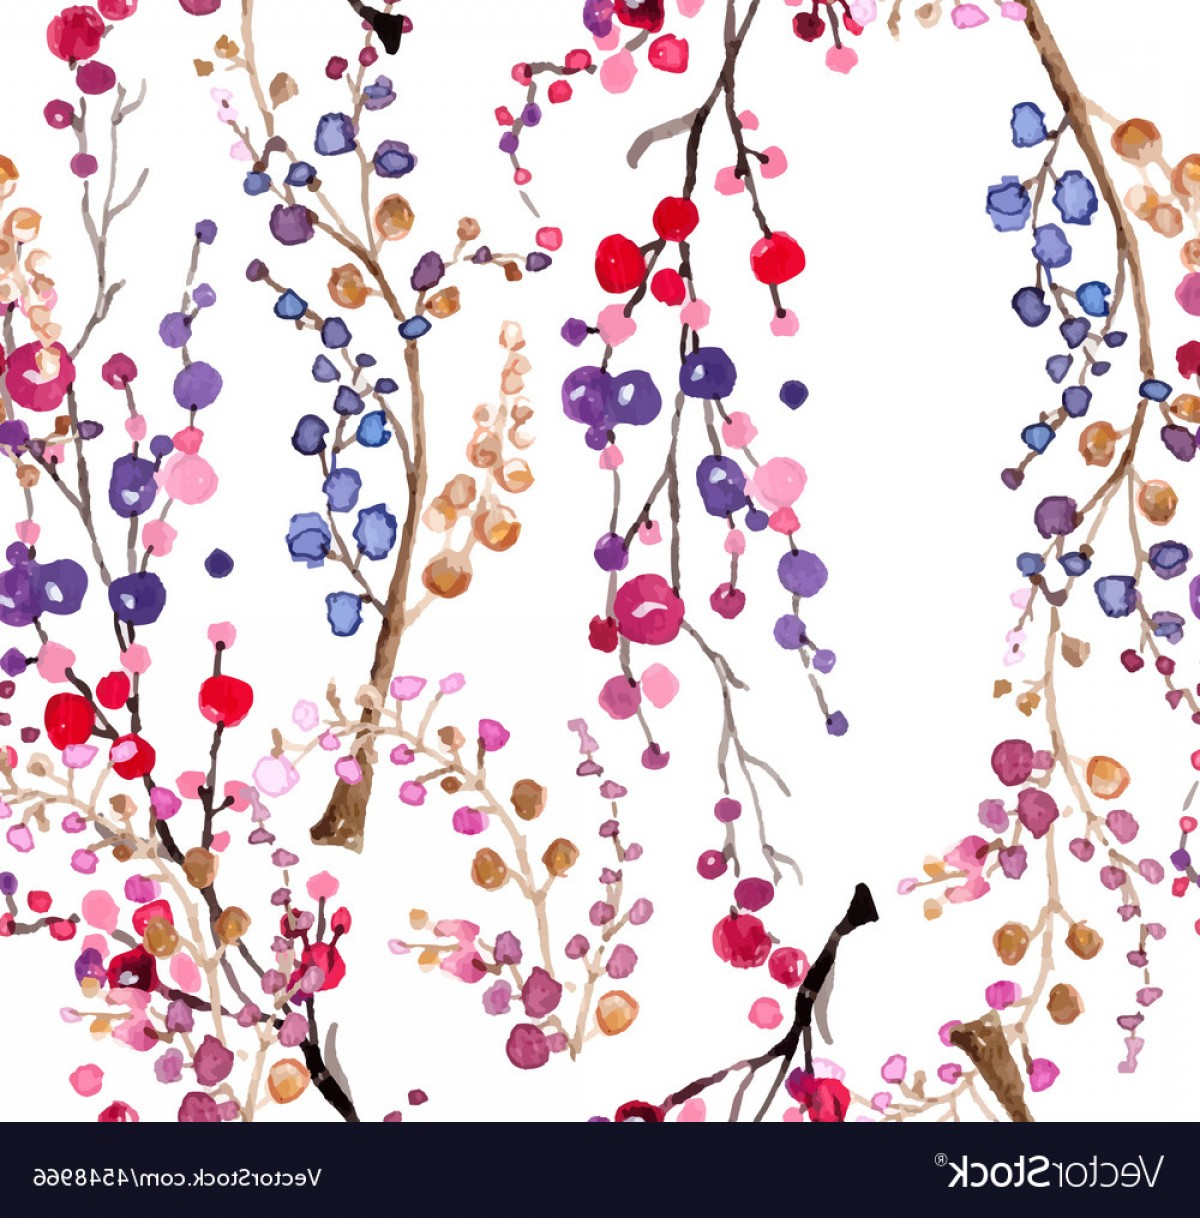 Watercolor Floral Background Vector: Seamless Watercolor Floral Background Vector